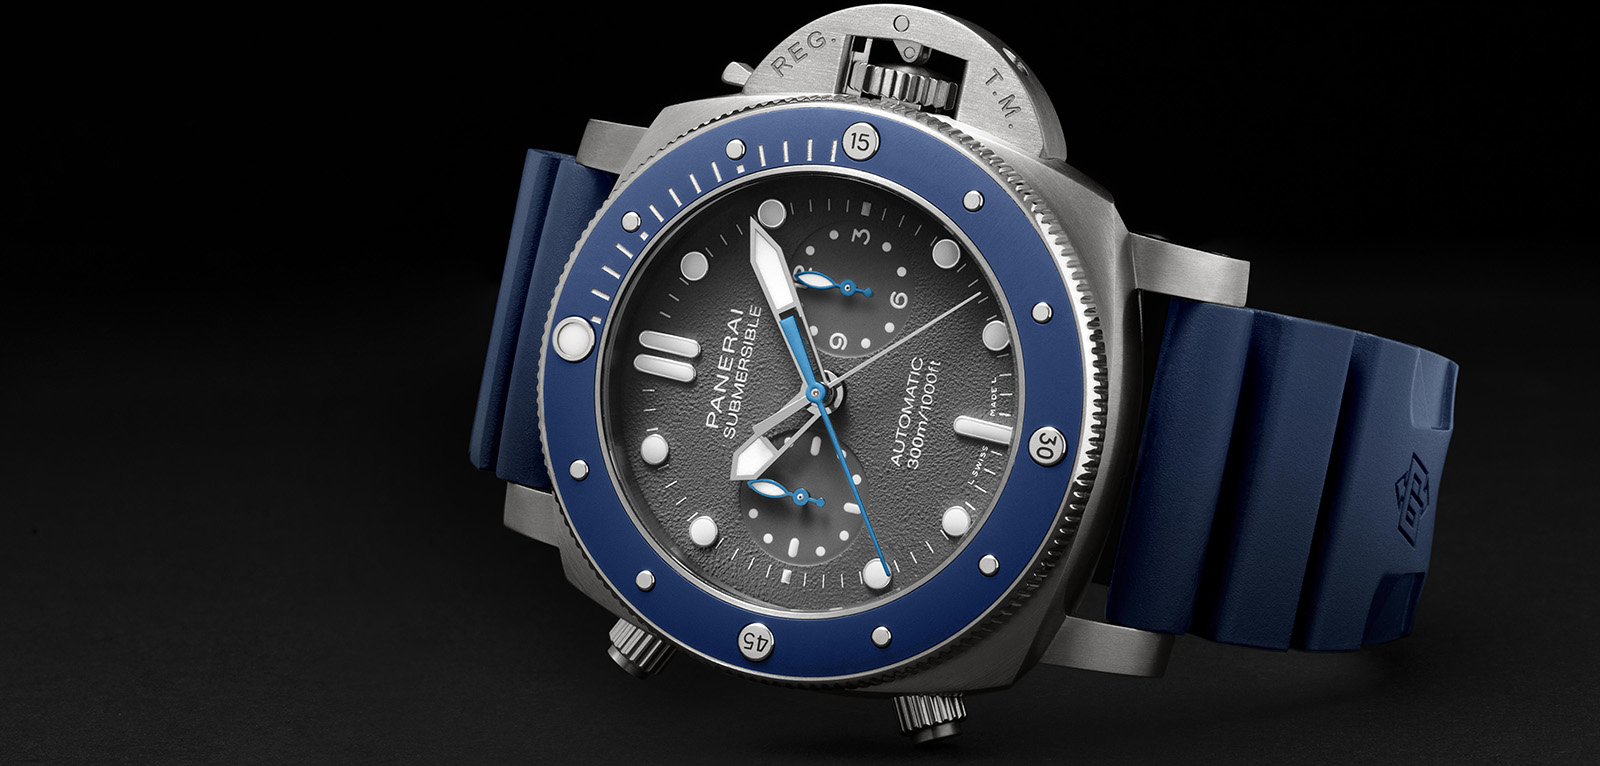 Panerai Submersible Chrono Guillaume Néry Edition-Pam982